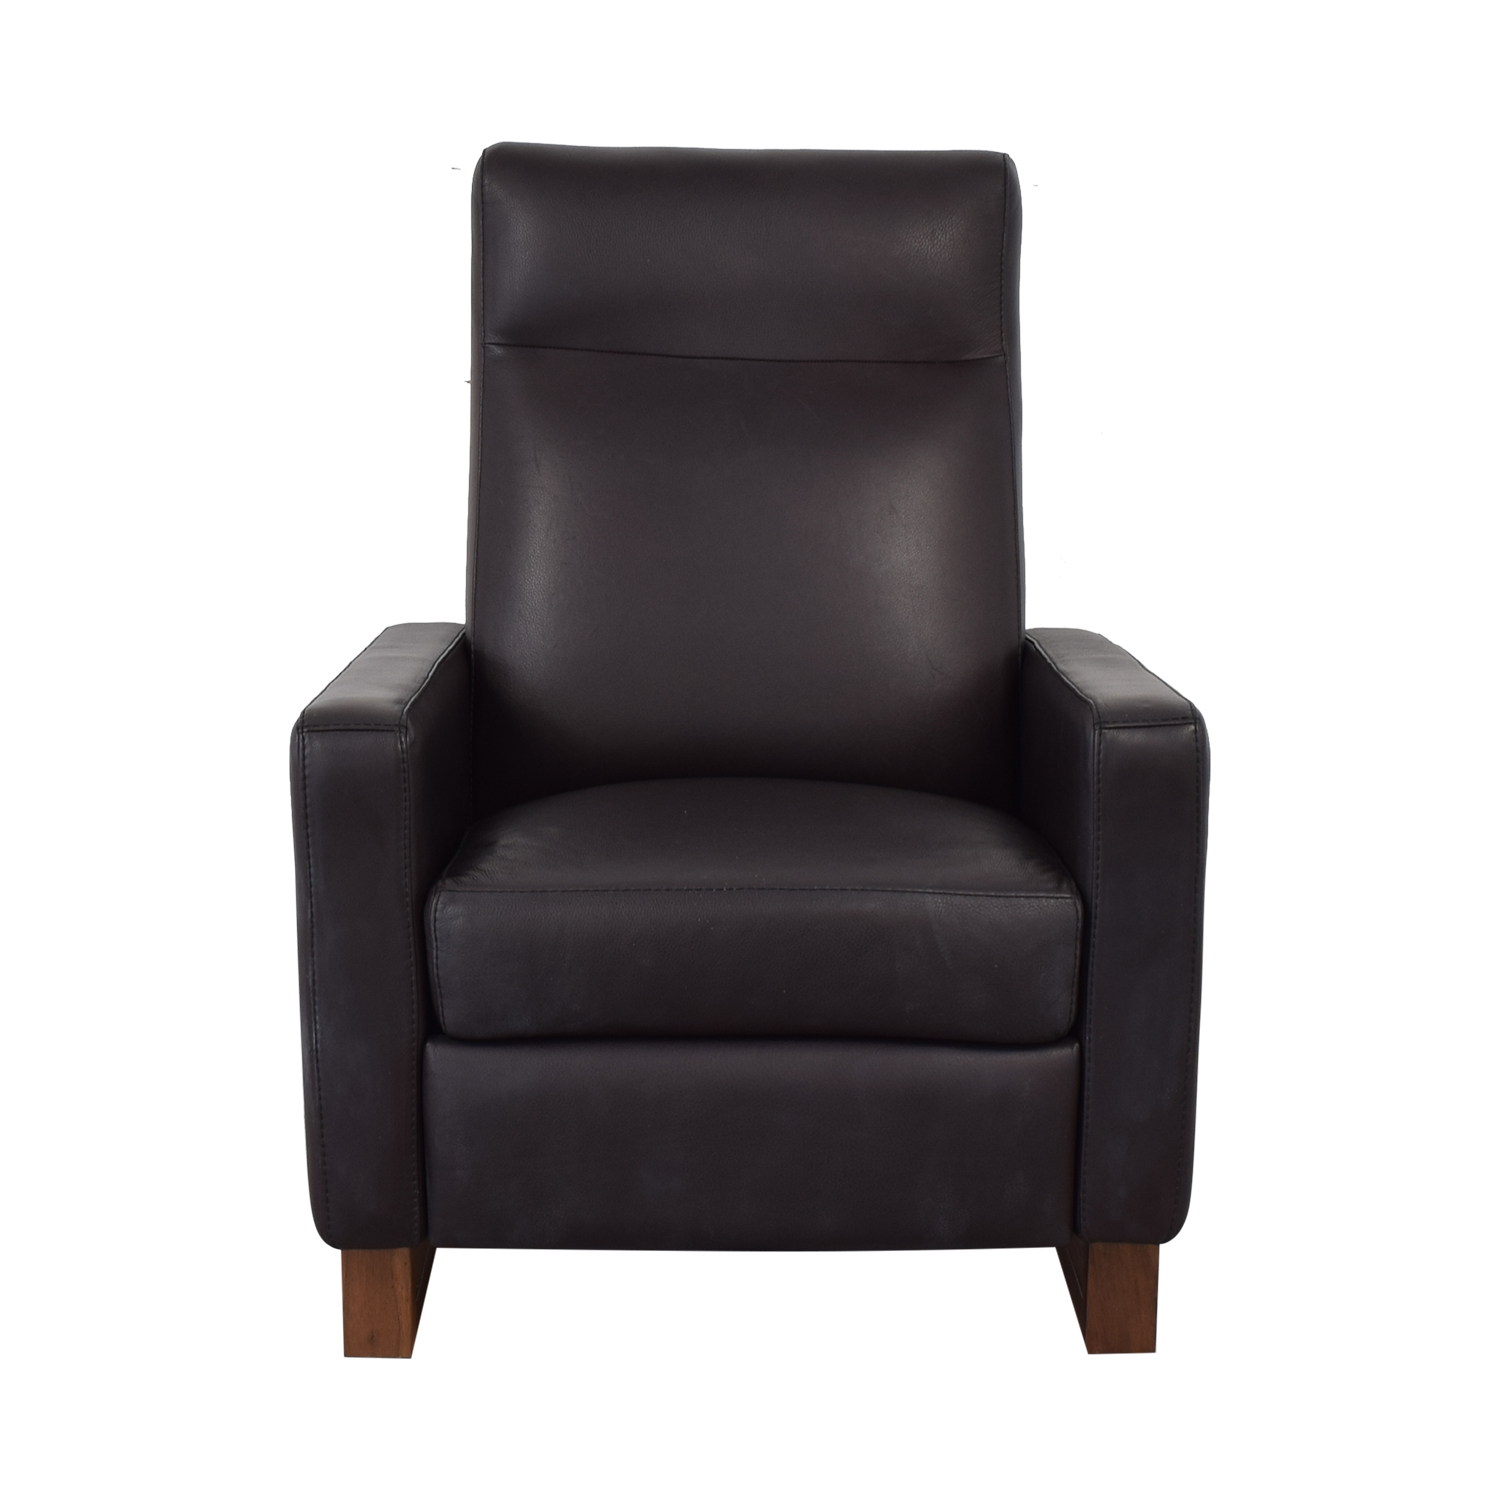 buy Room & Board Room & Board Leather Recliner Power Operated and USB Port online